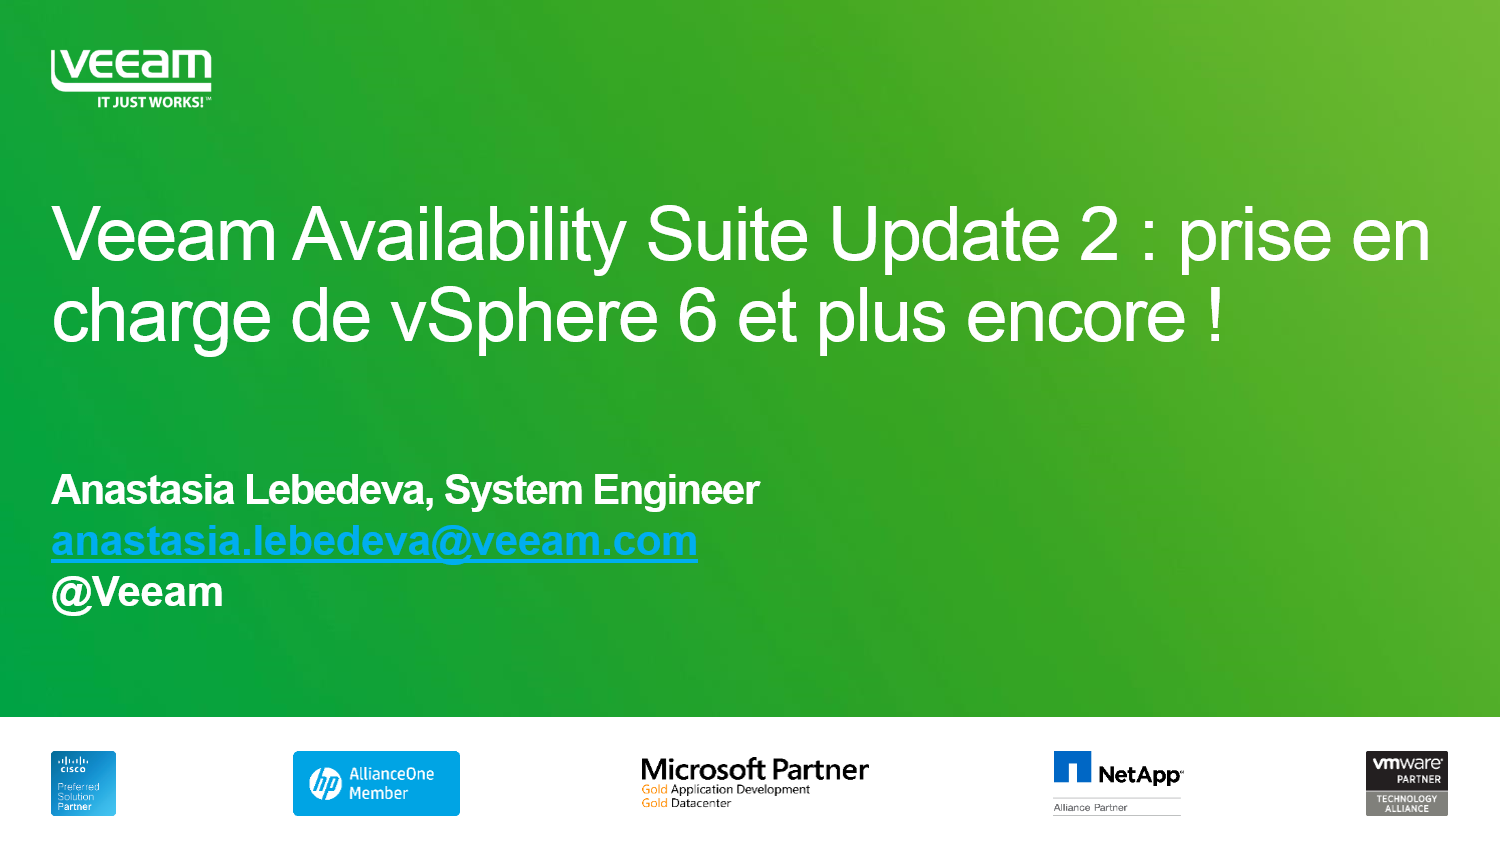 Veeam Availability Suite v8 Update 2: Le support complet de vSphere 6 et encore plus!